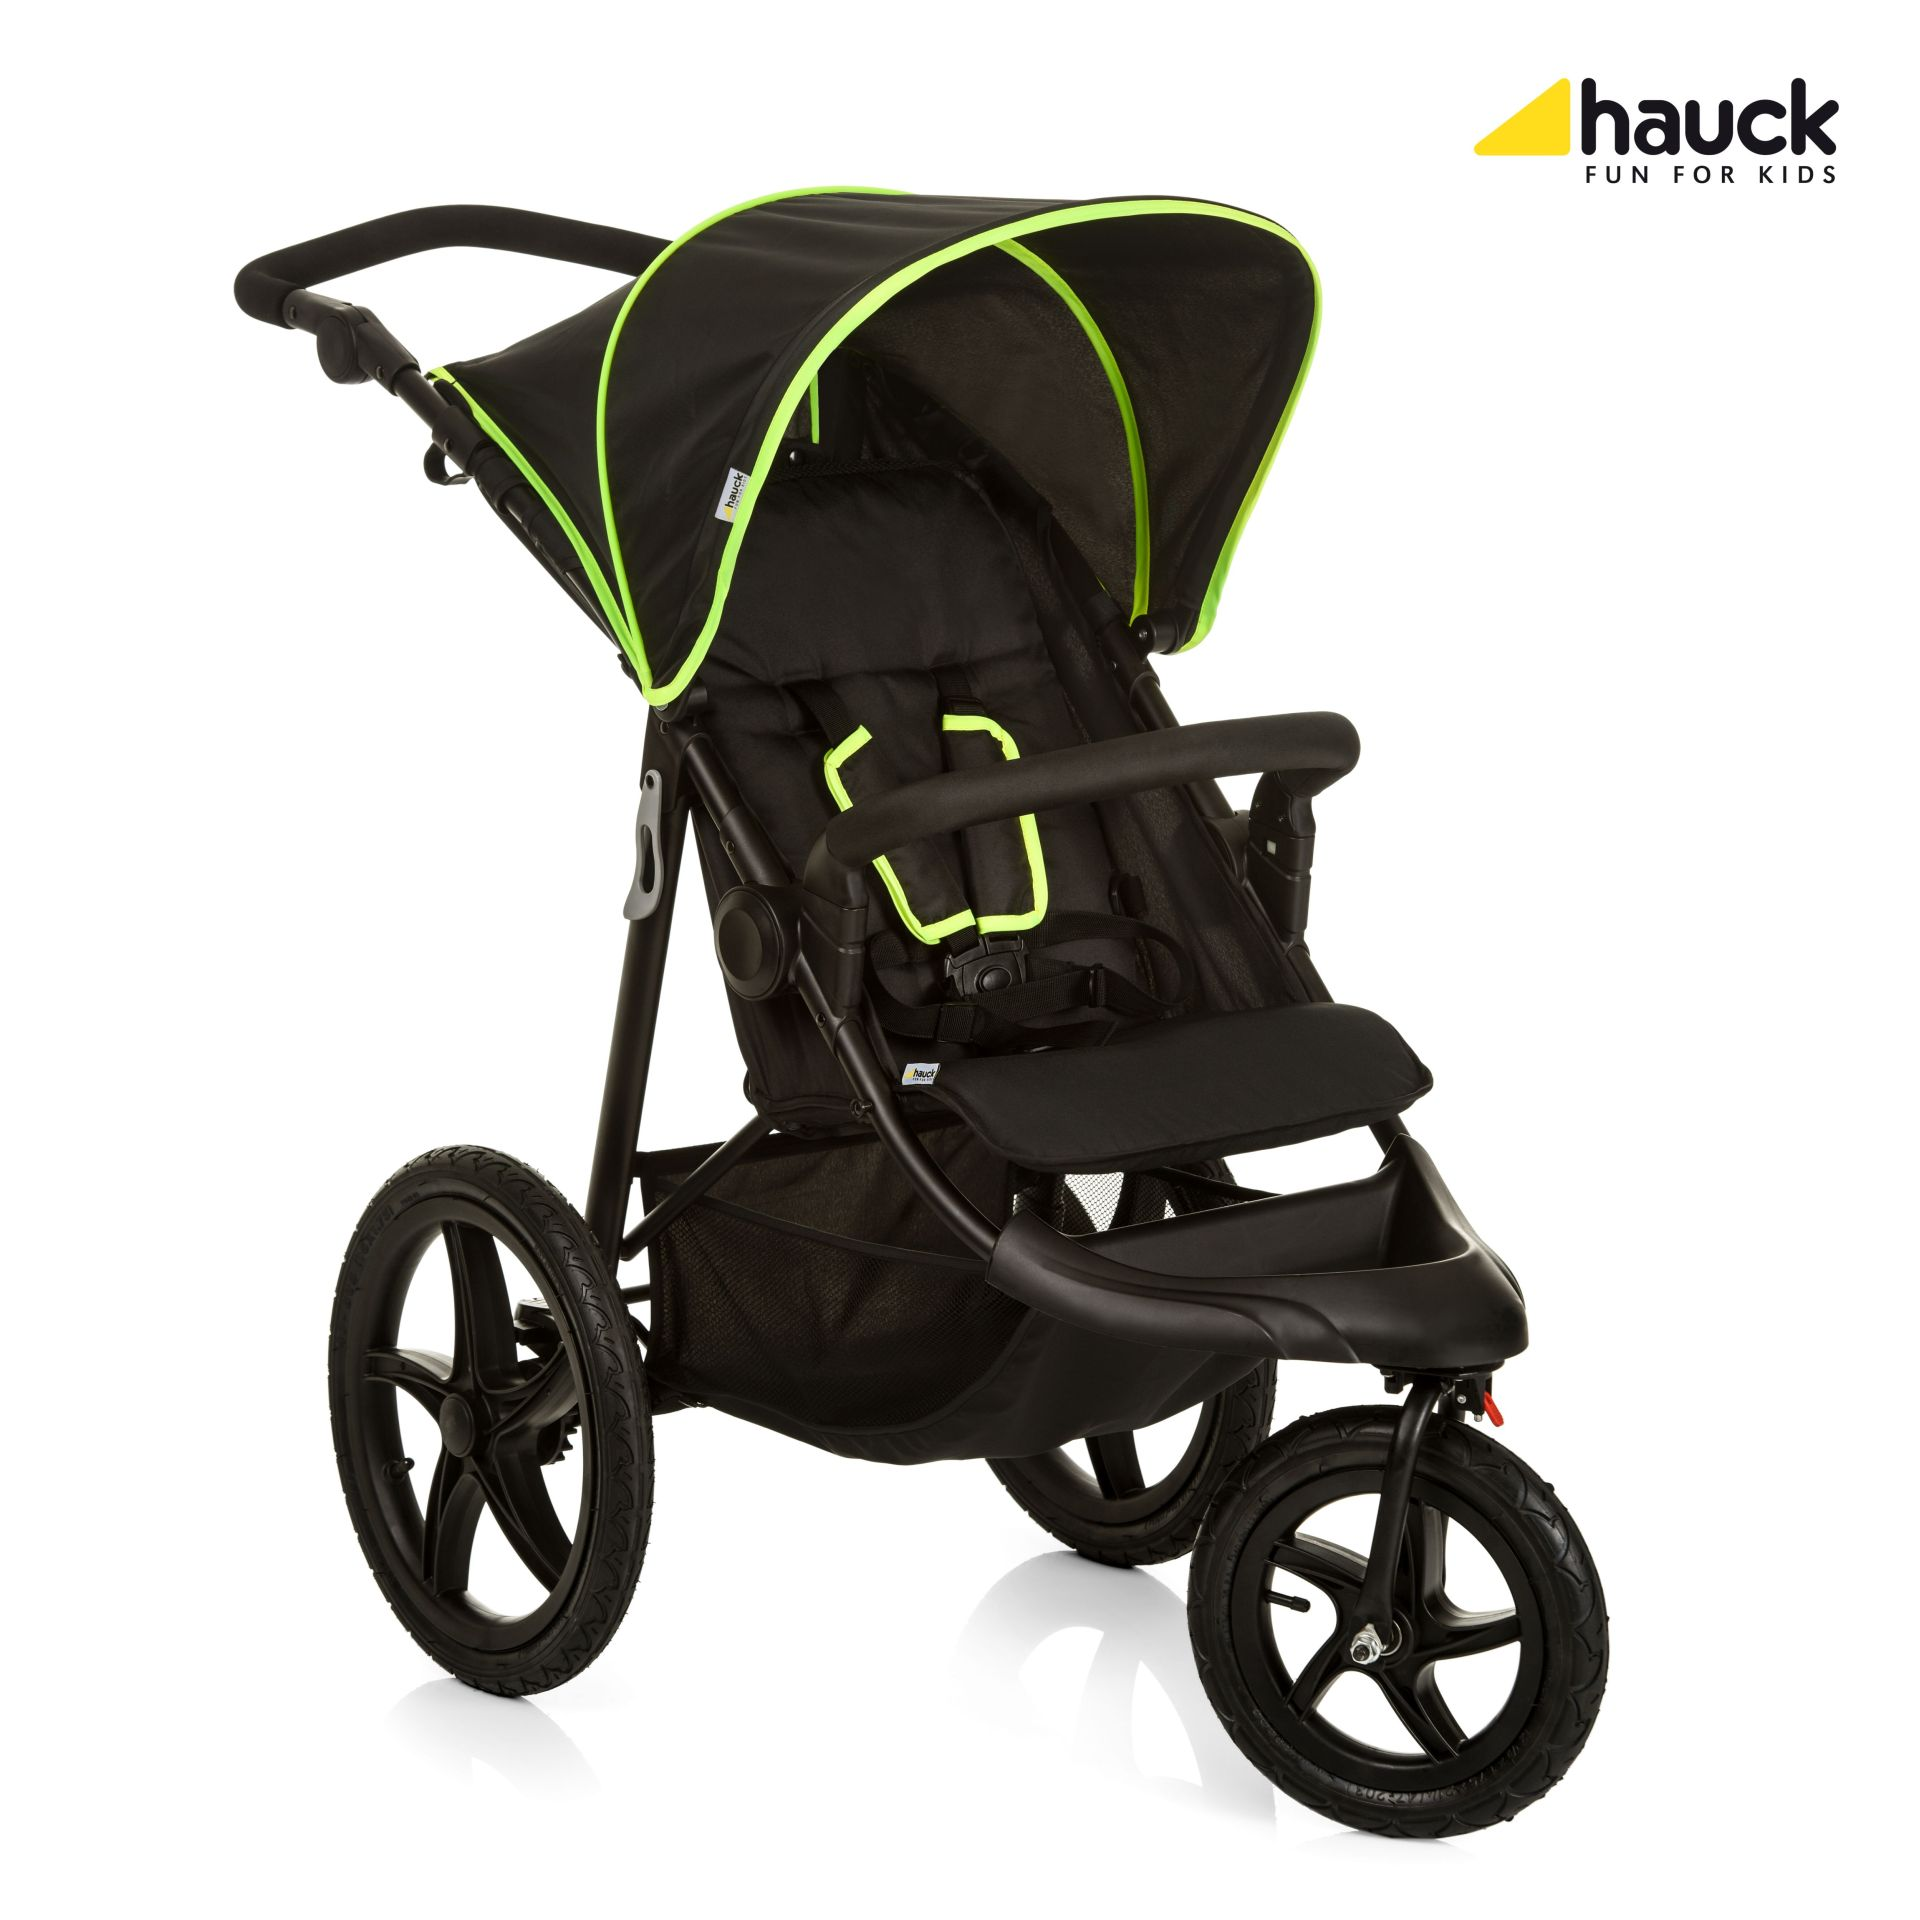 hauck buggy runner 2018 buy at kidsroom strollers. Black Bedroom Furniture Sets. Home Design Ideas